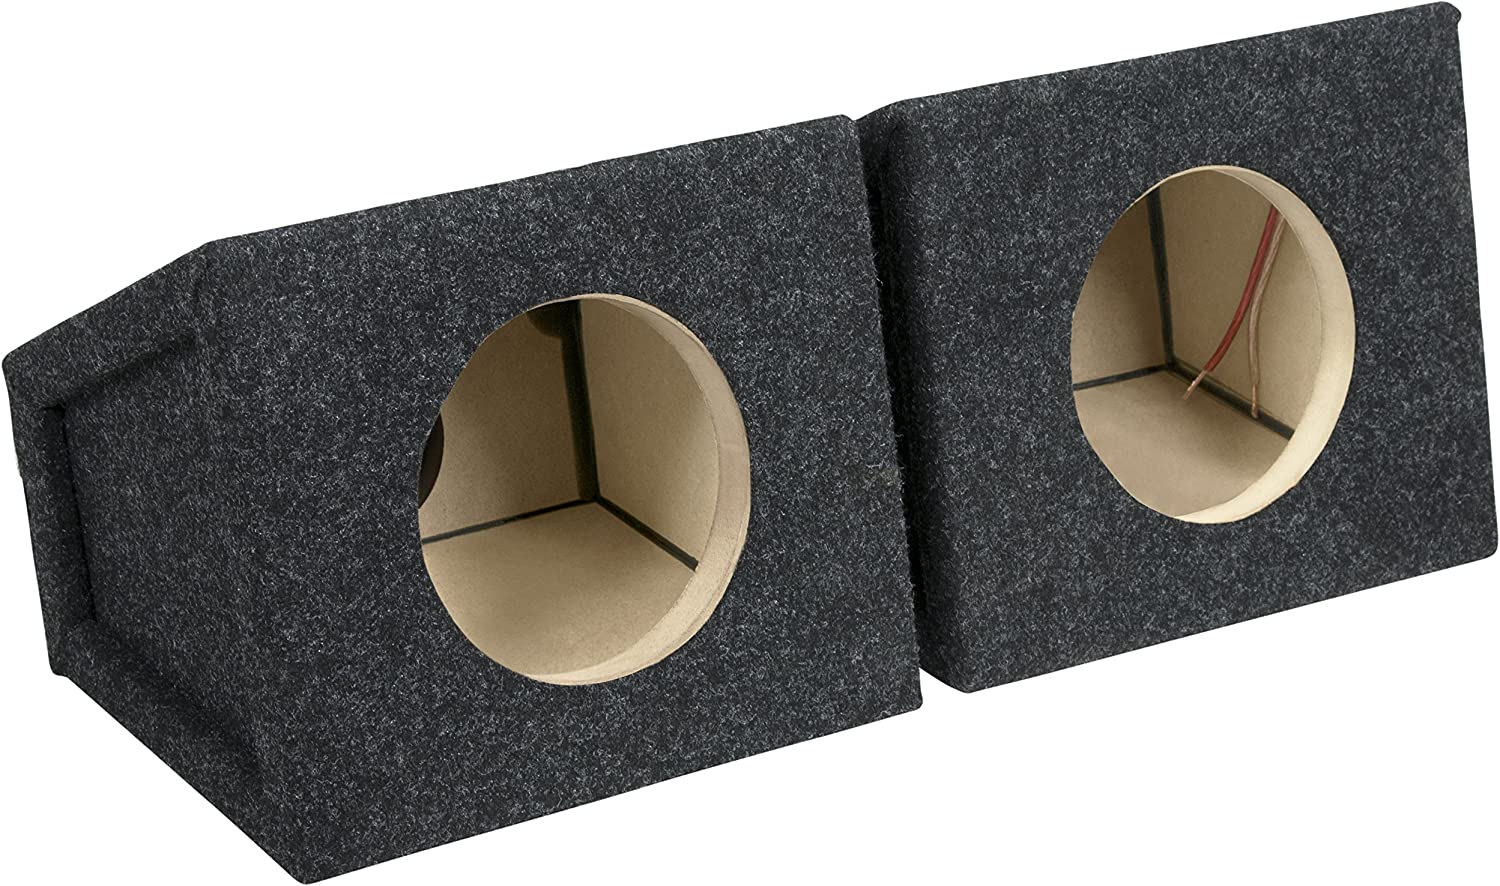 "Atrend 8.8PR Bbox 8.8"" Pro Audio Tuned Speaker Enclosures (8), Black"